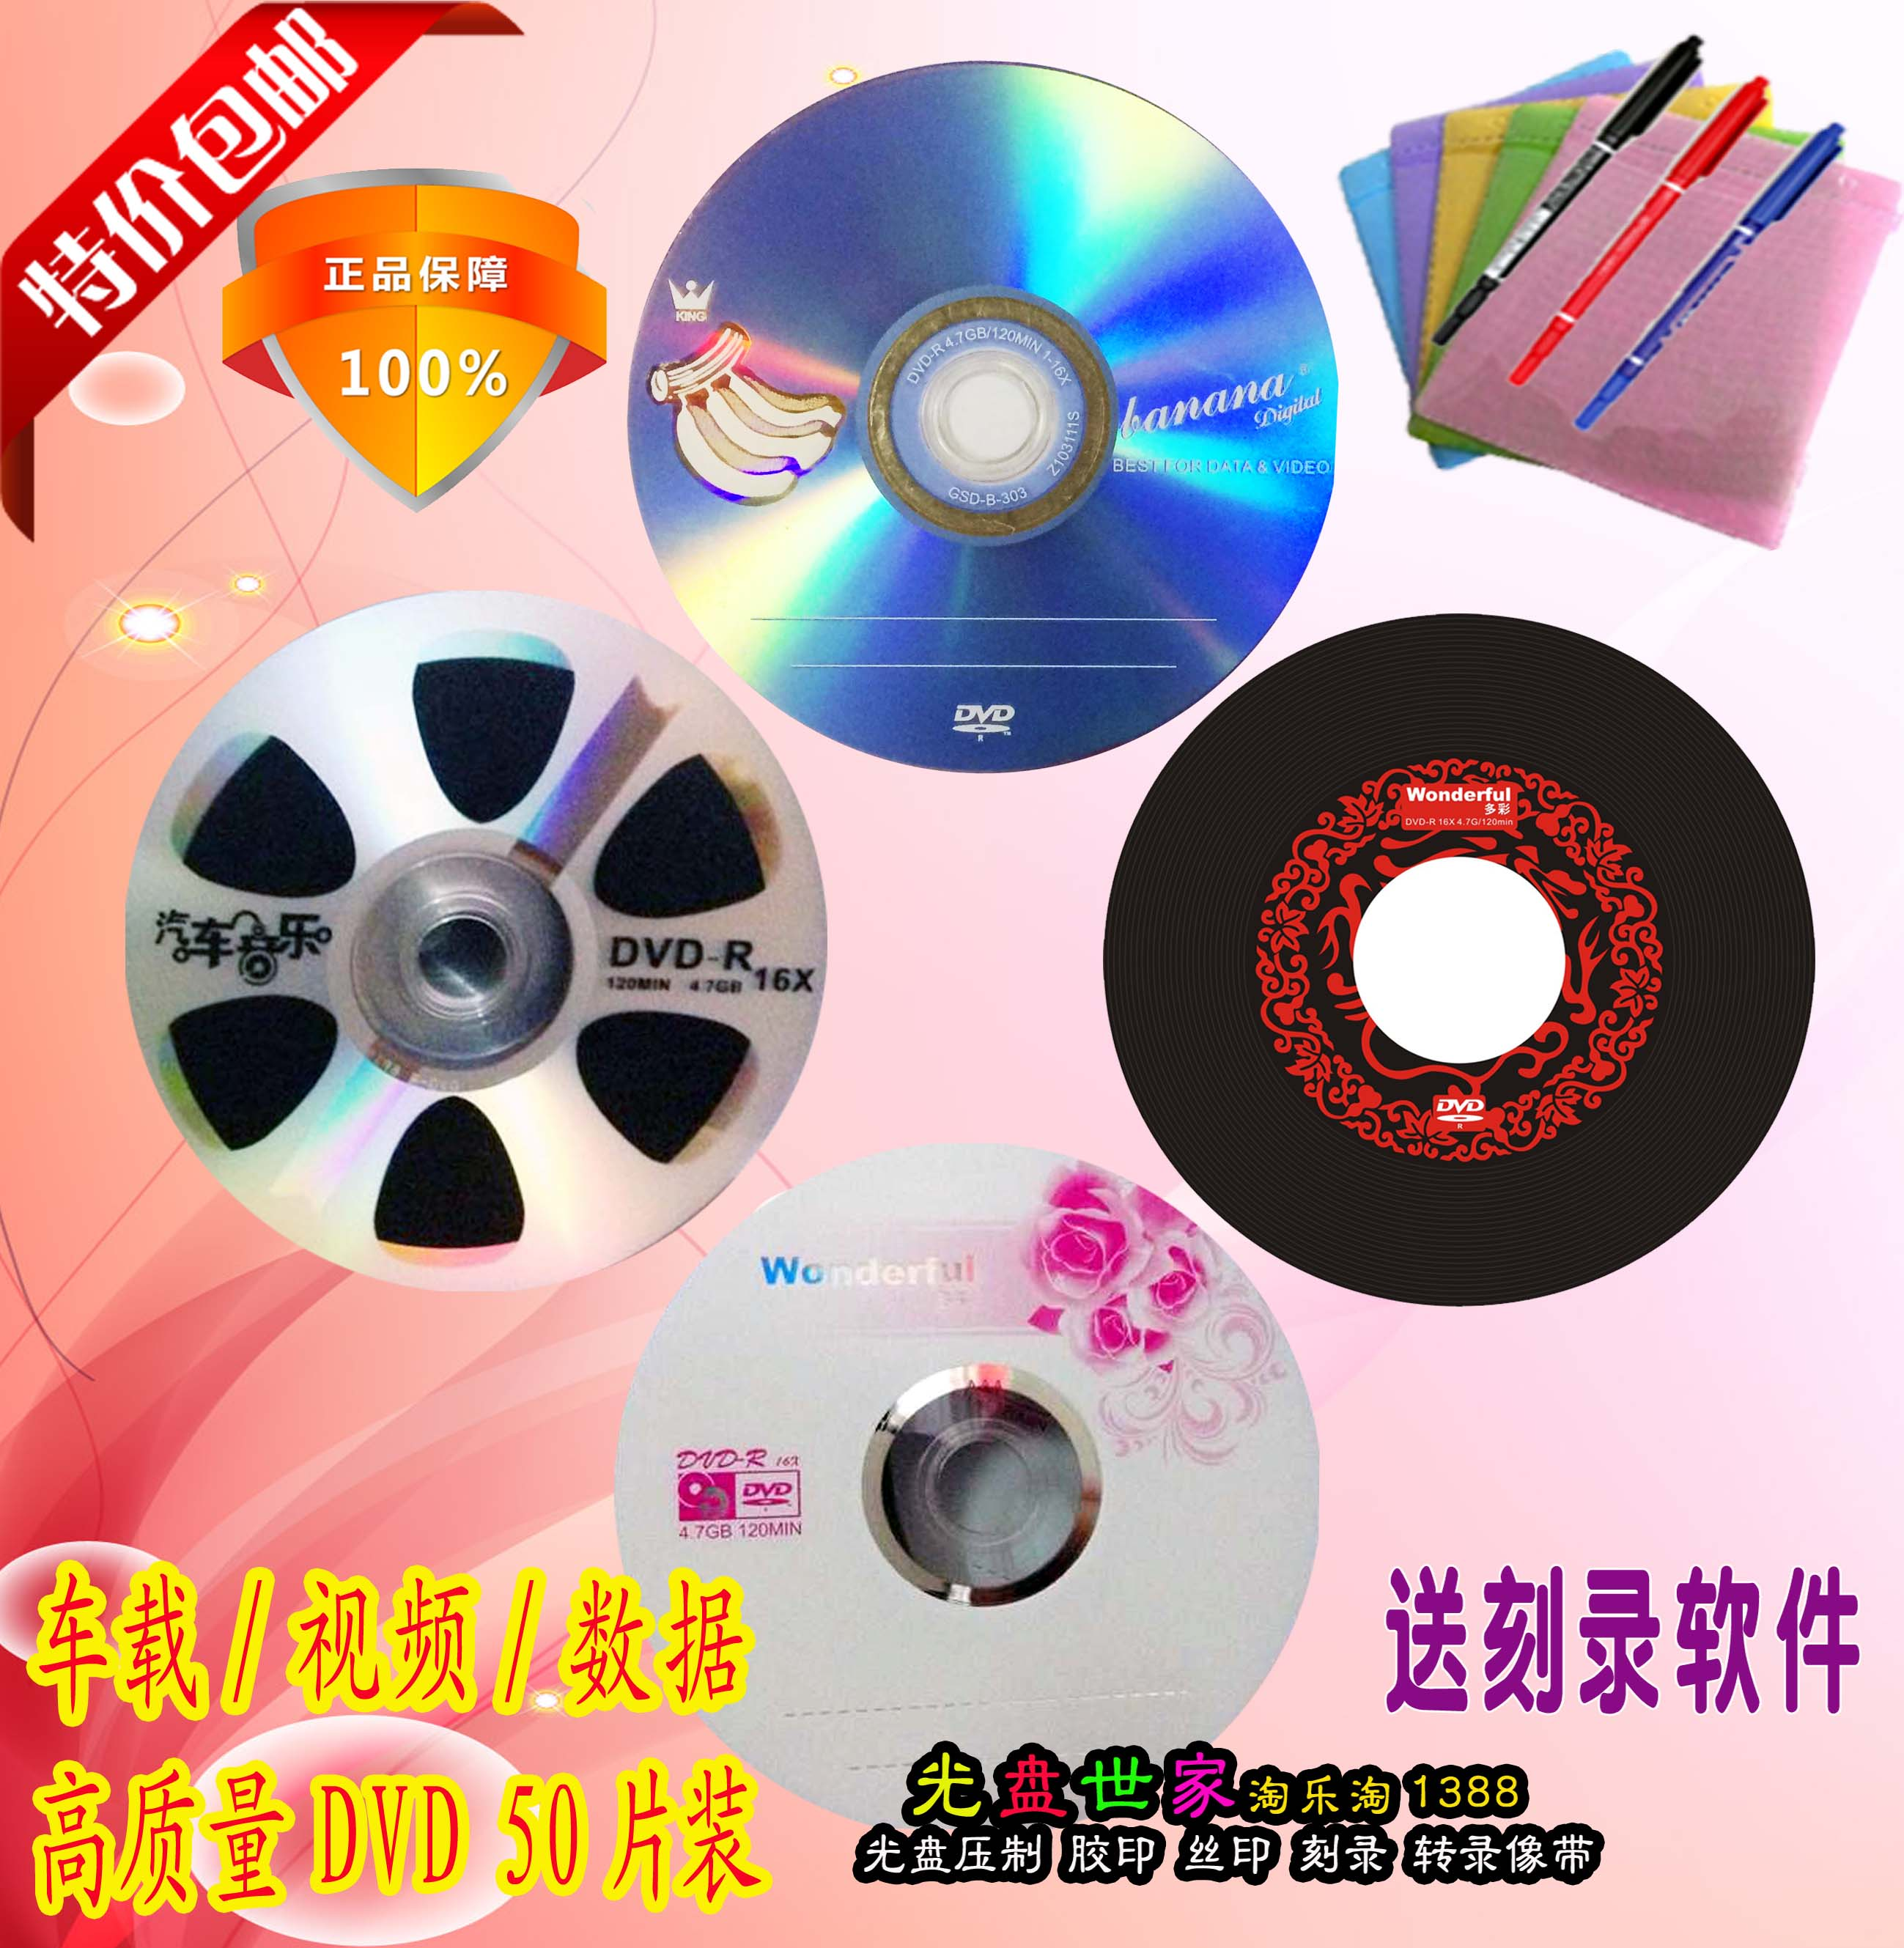 Shipping banana DVD CD DVD DVD Burner blank CD 50 disc CD DVD-R